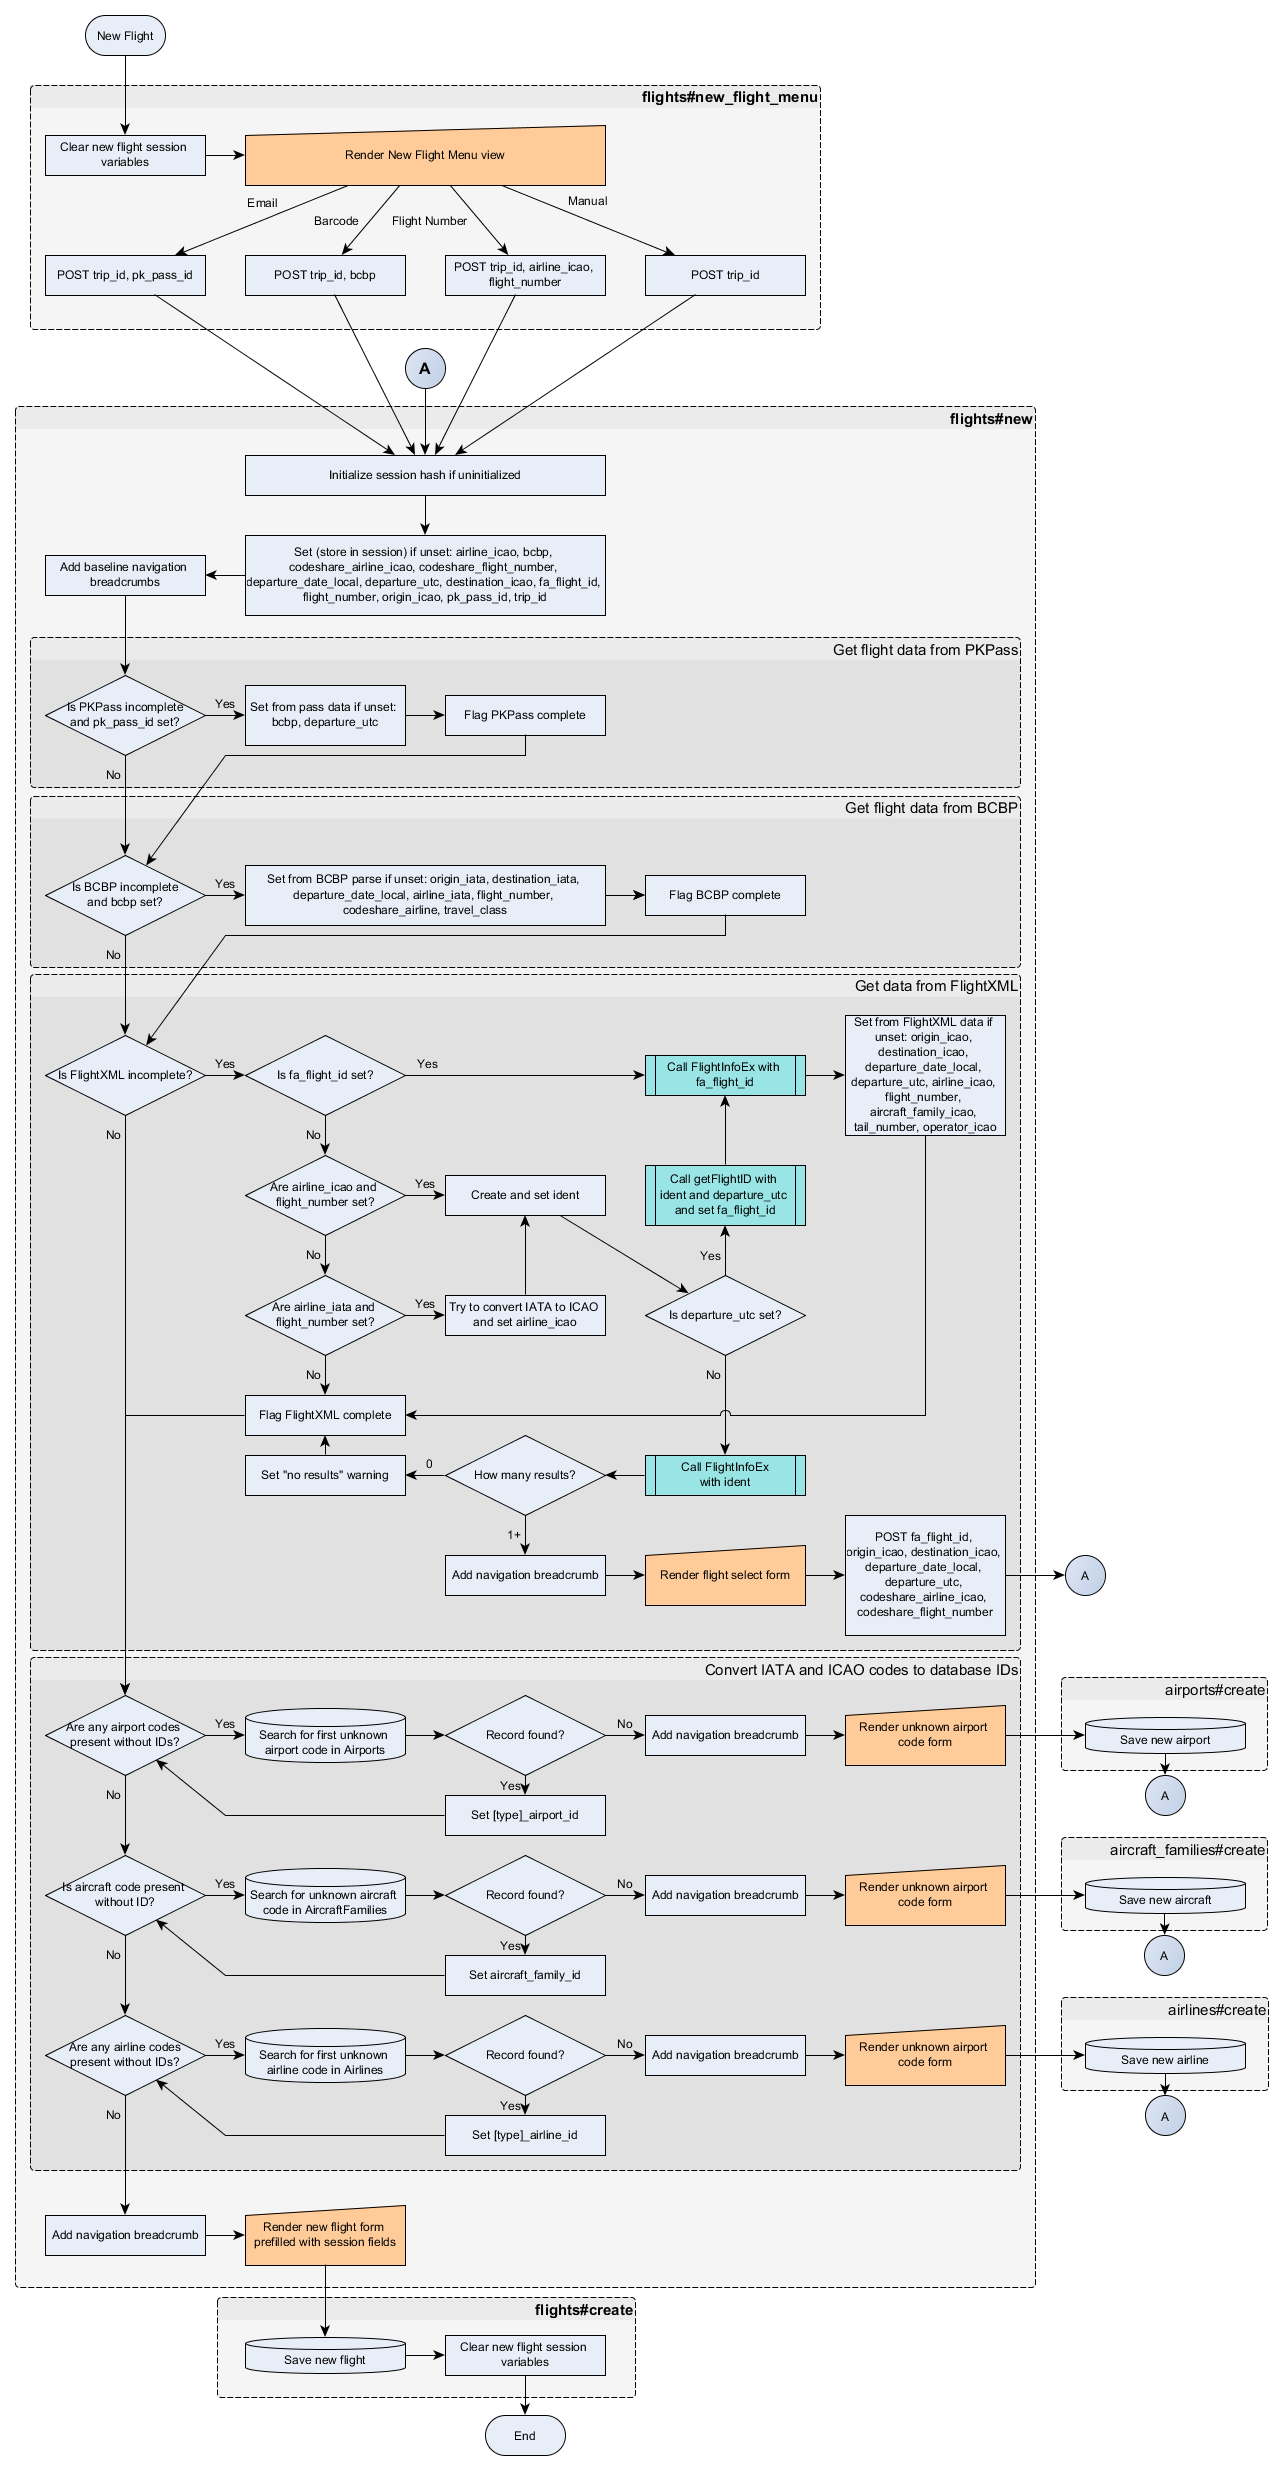 Flowchart for the new flight lookup process